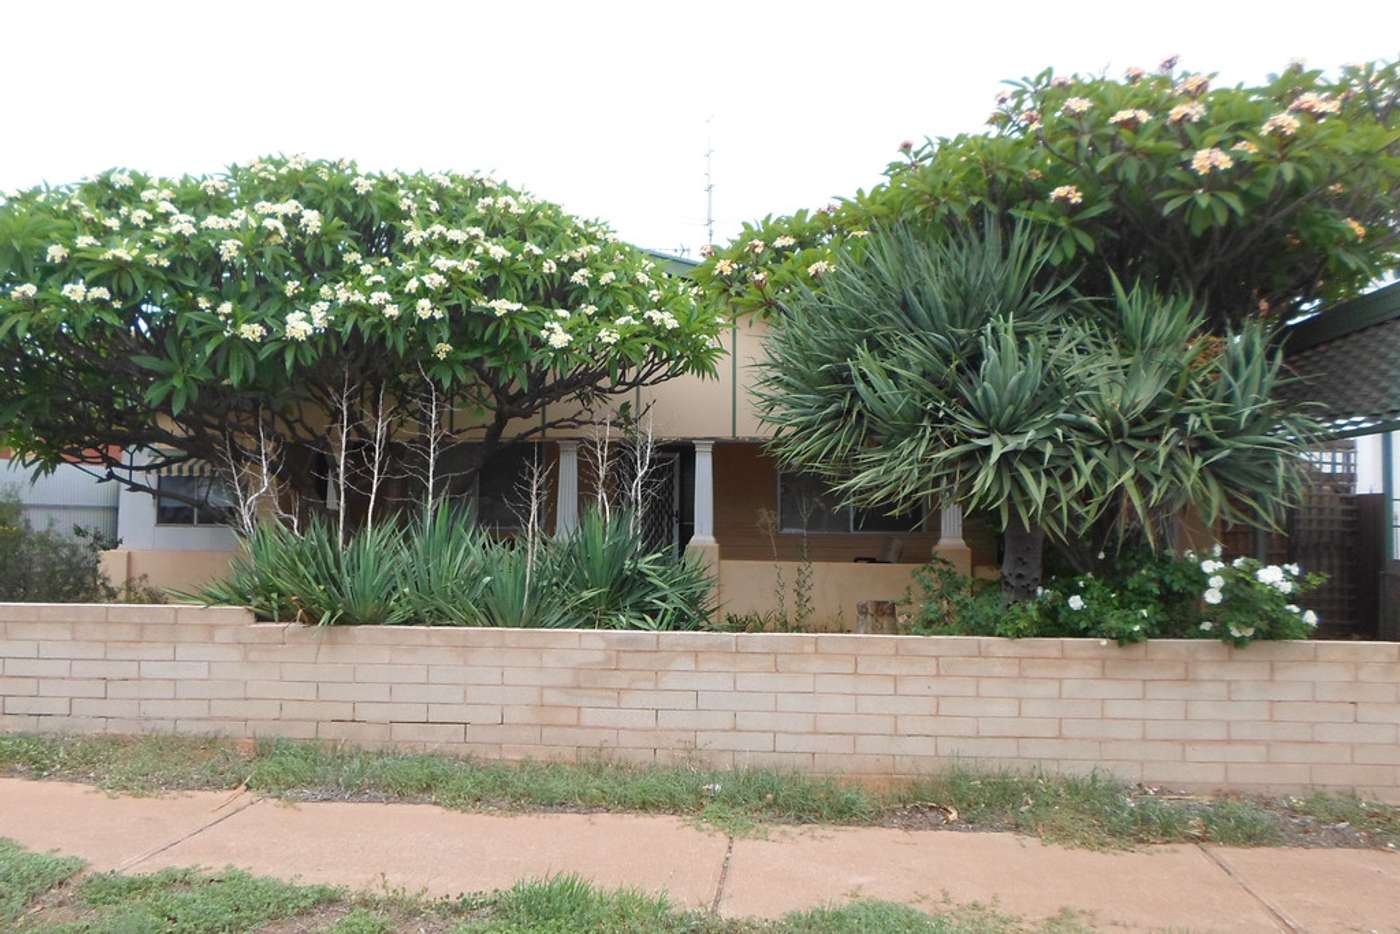 Main view of Homely house listing, 61 Herbert Street, Whyalla SA 5600